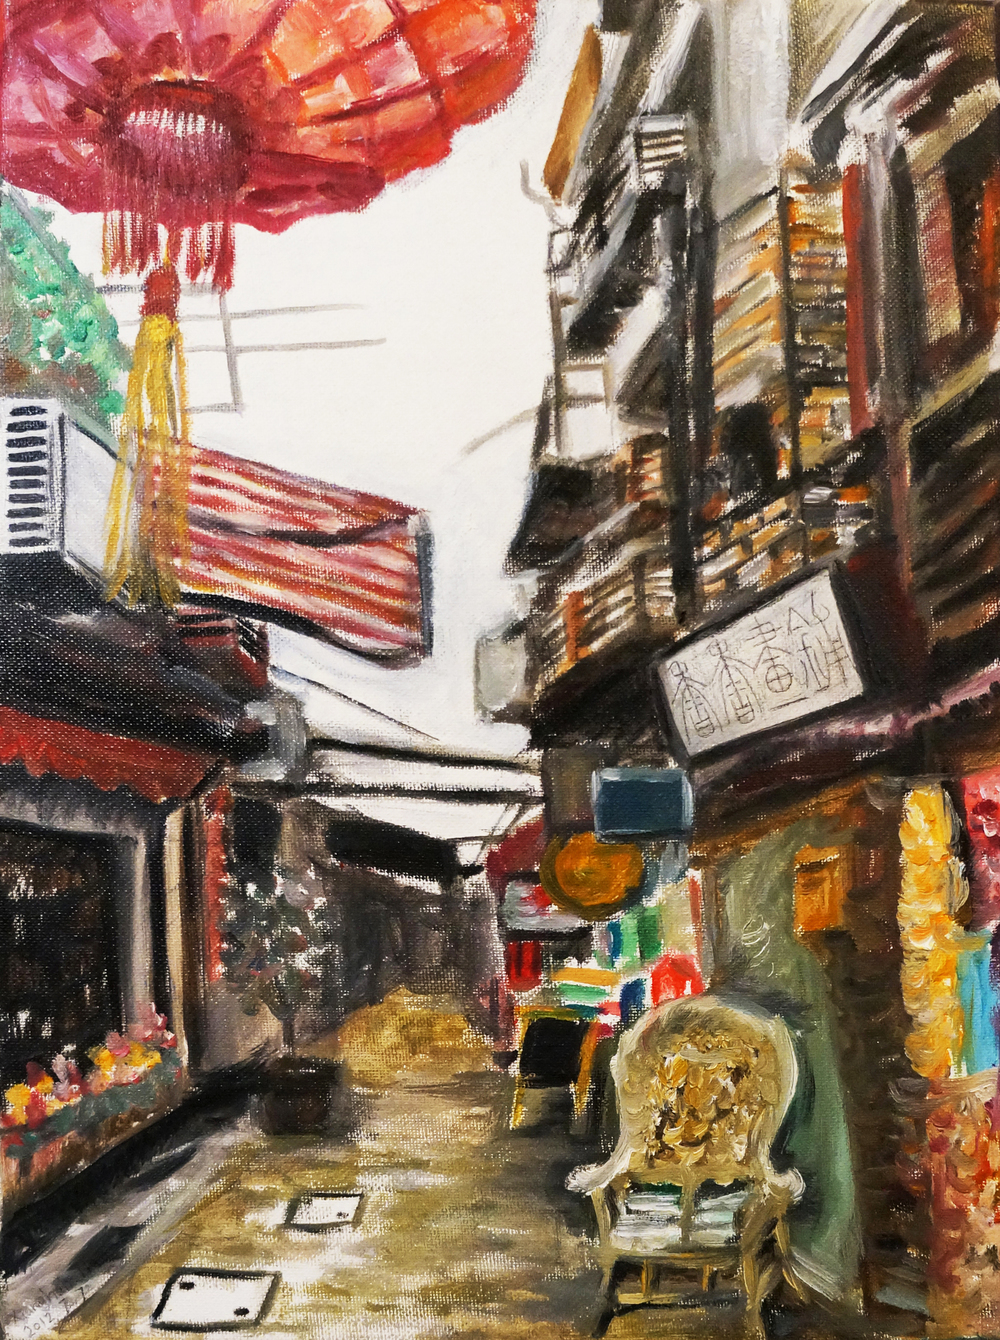 Alley in Shanghai